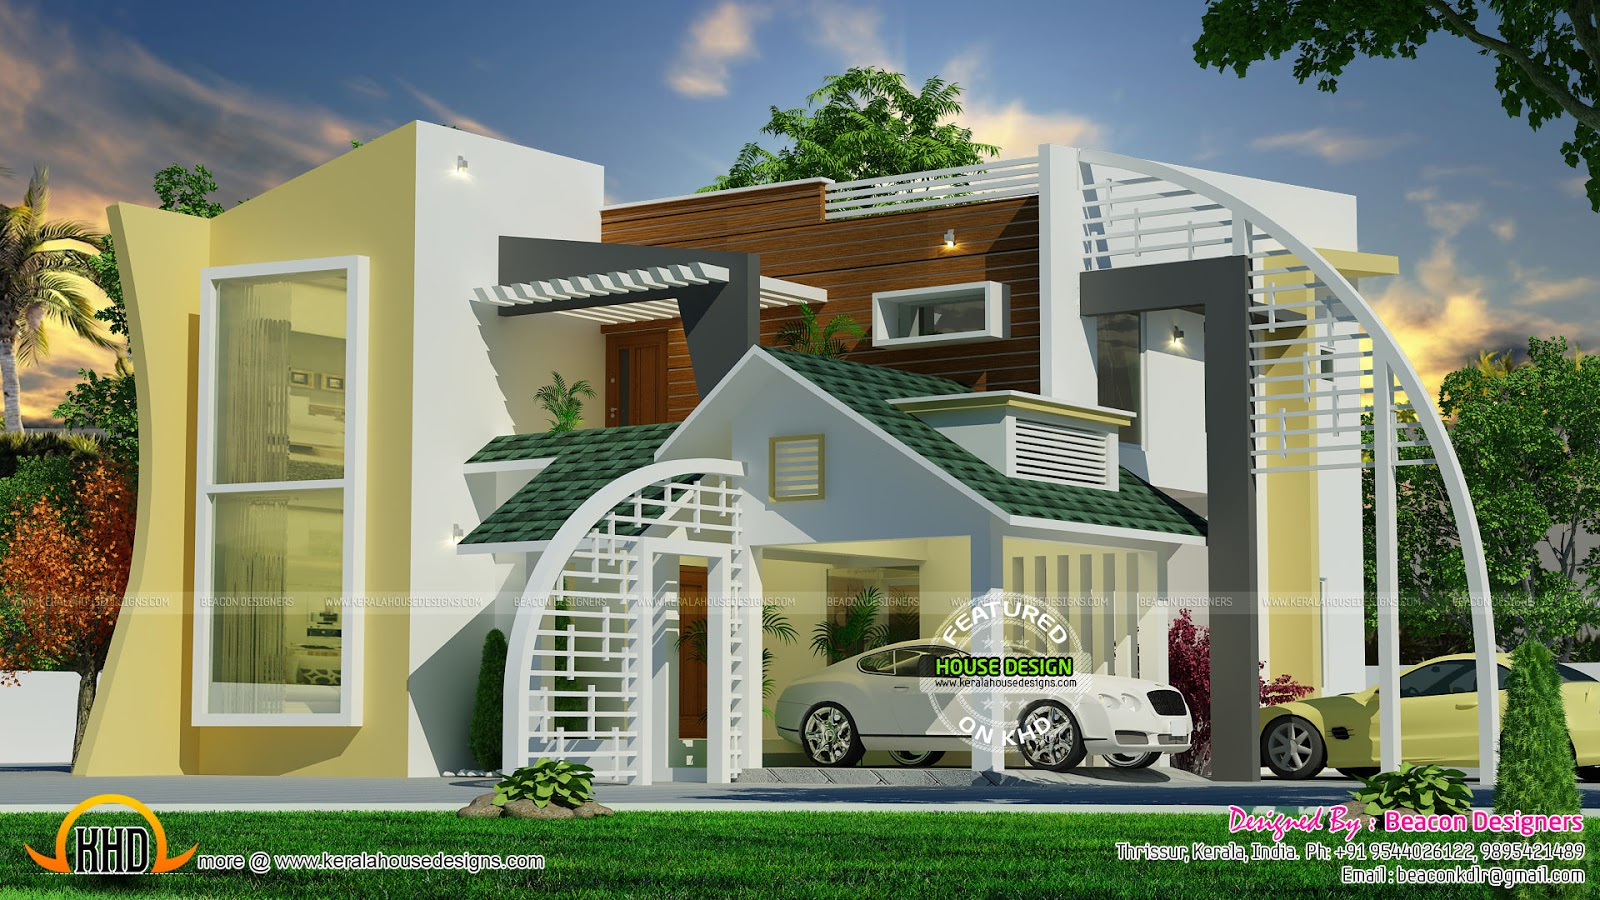 Unique ultra modern contemporary home kerala home design and floor plans - Contemporary home design ...